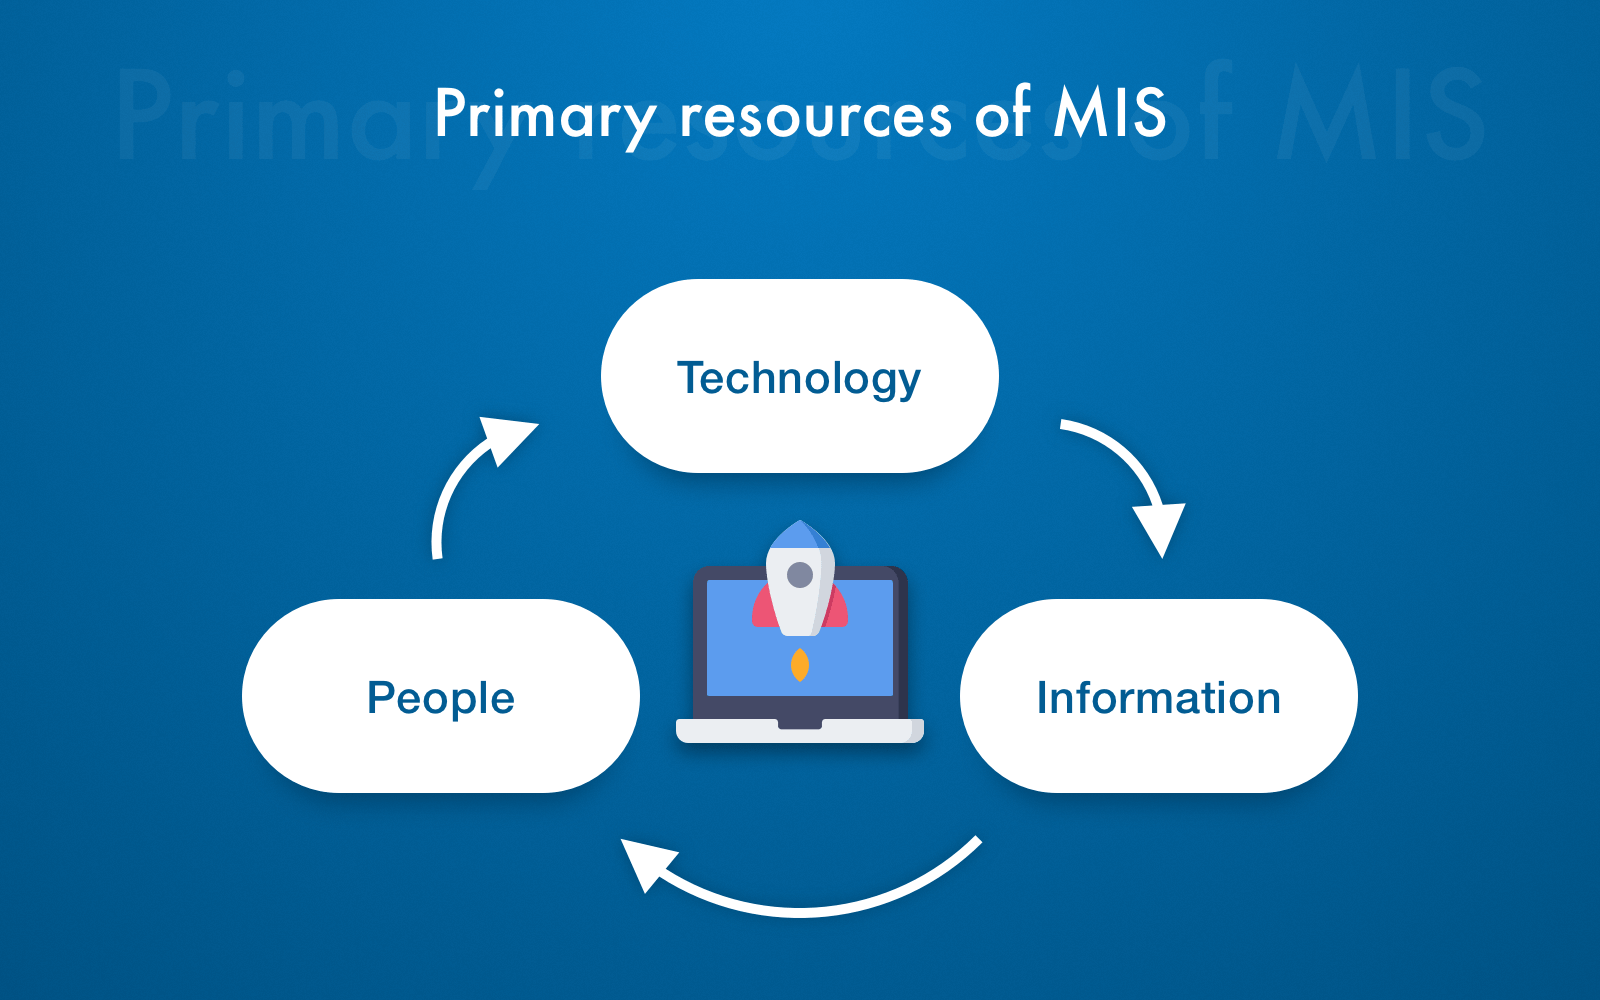 MIS software primary resources concept